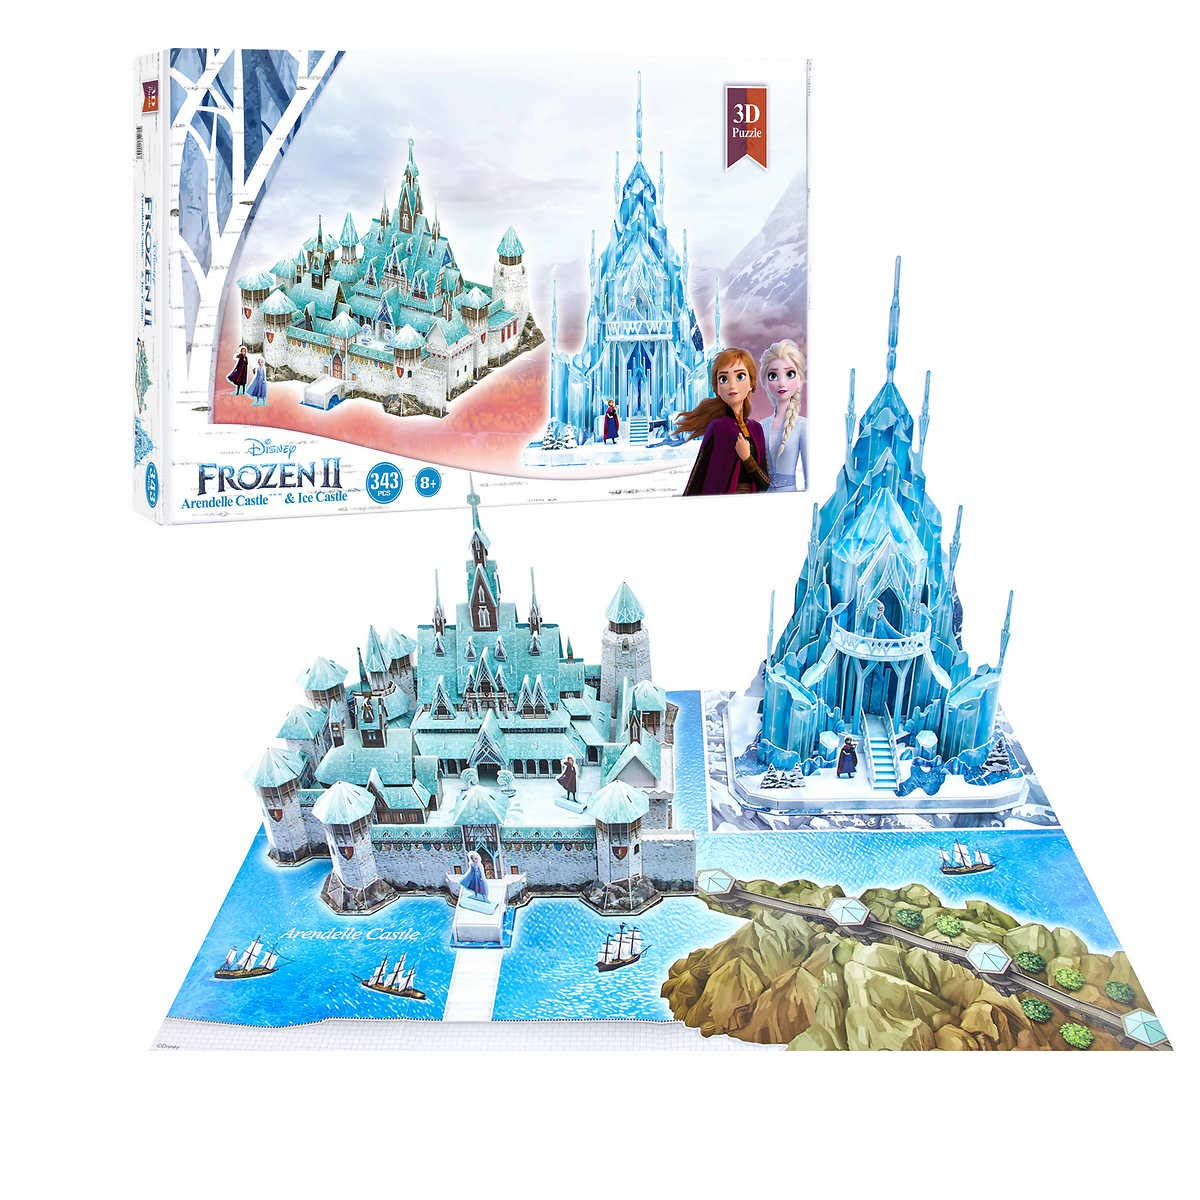 Disney Frozen II Arendelle Castle & Ice Castle 343 Pcs 3D Puzzle 8 years +